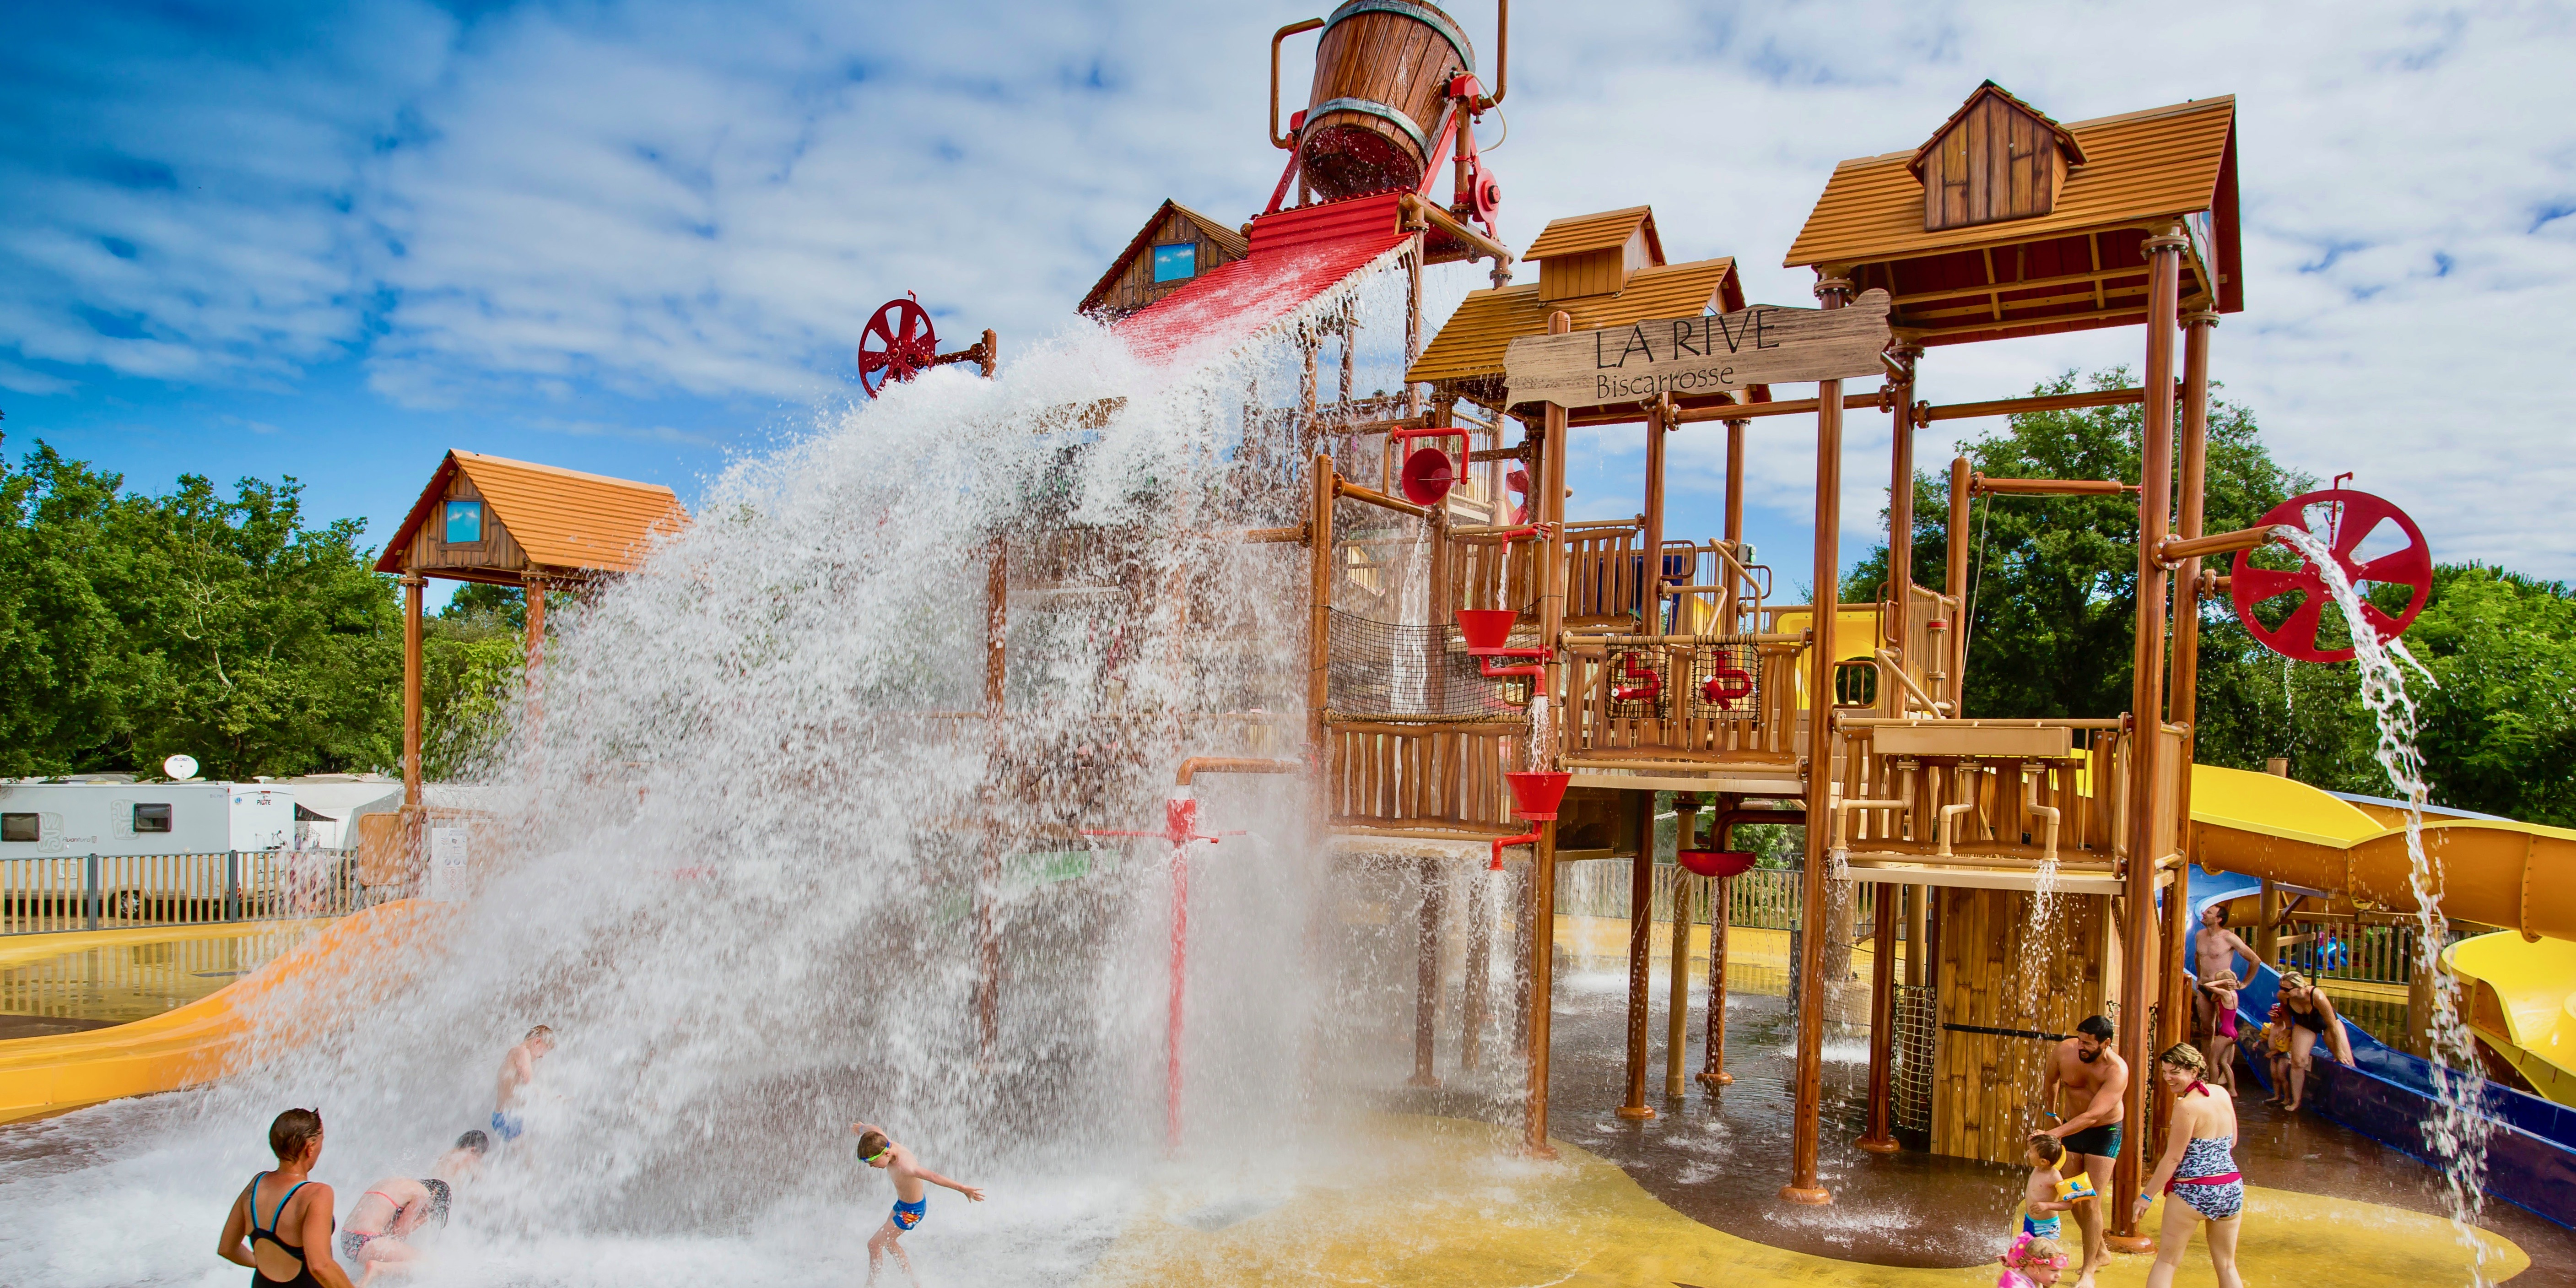 Water park at La Rive